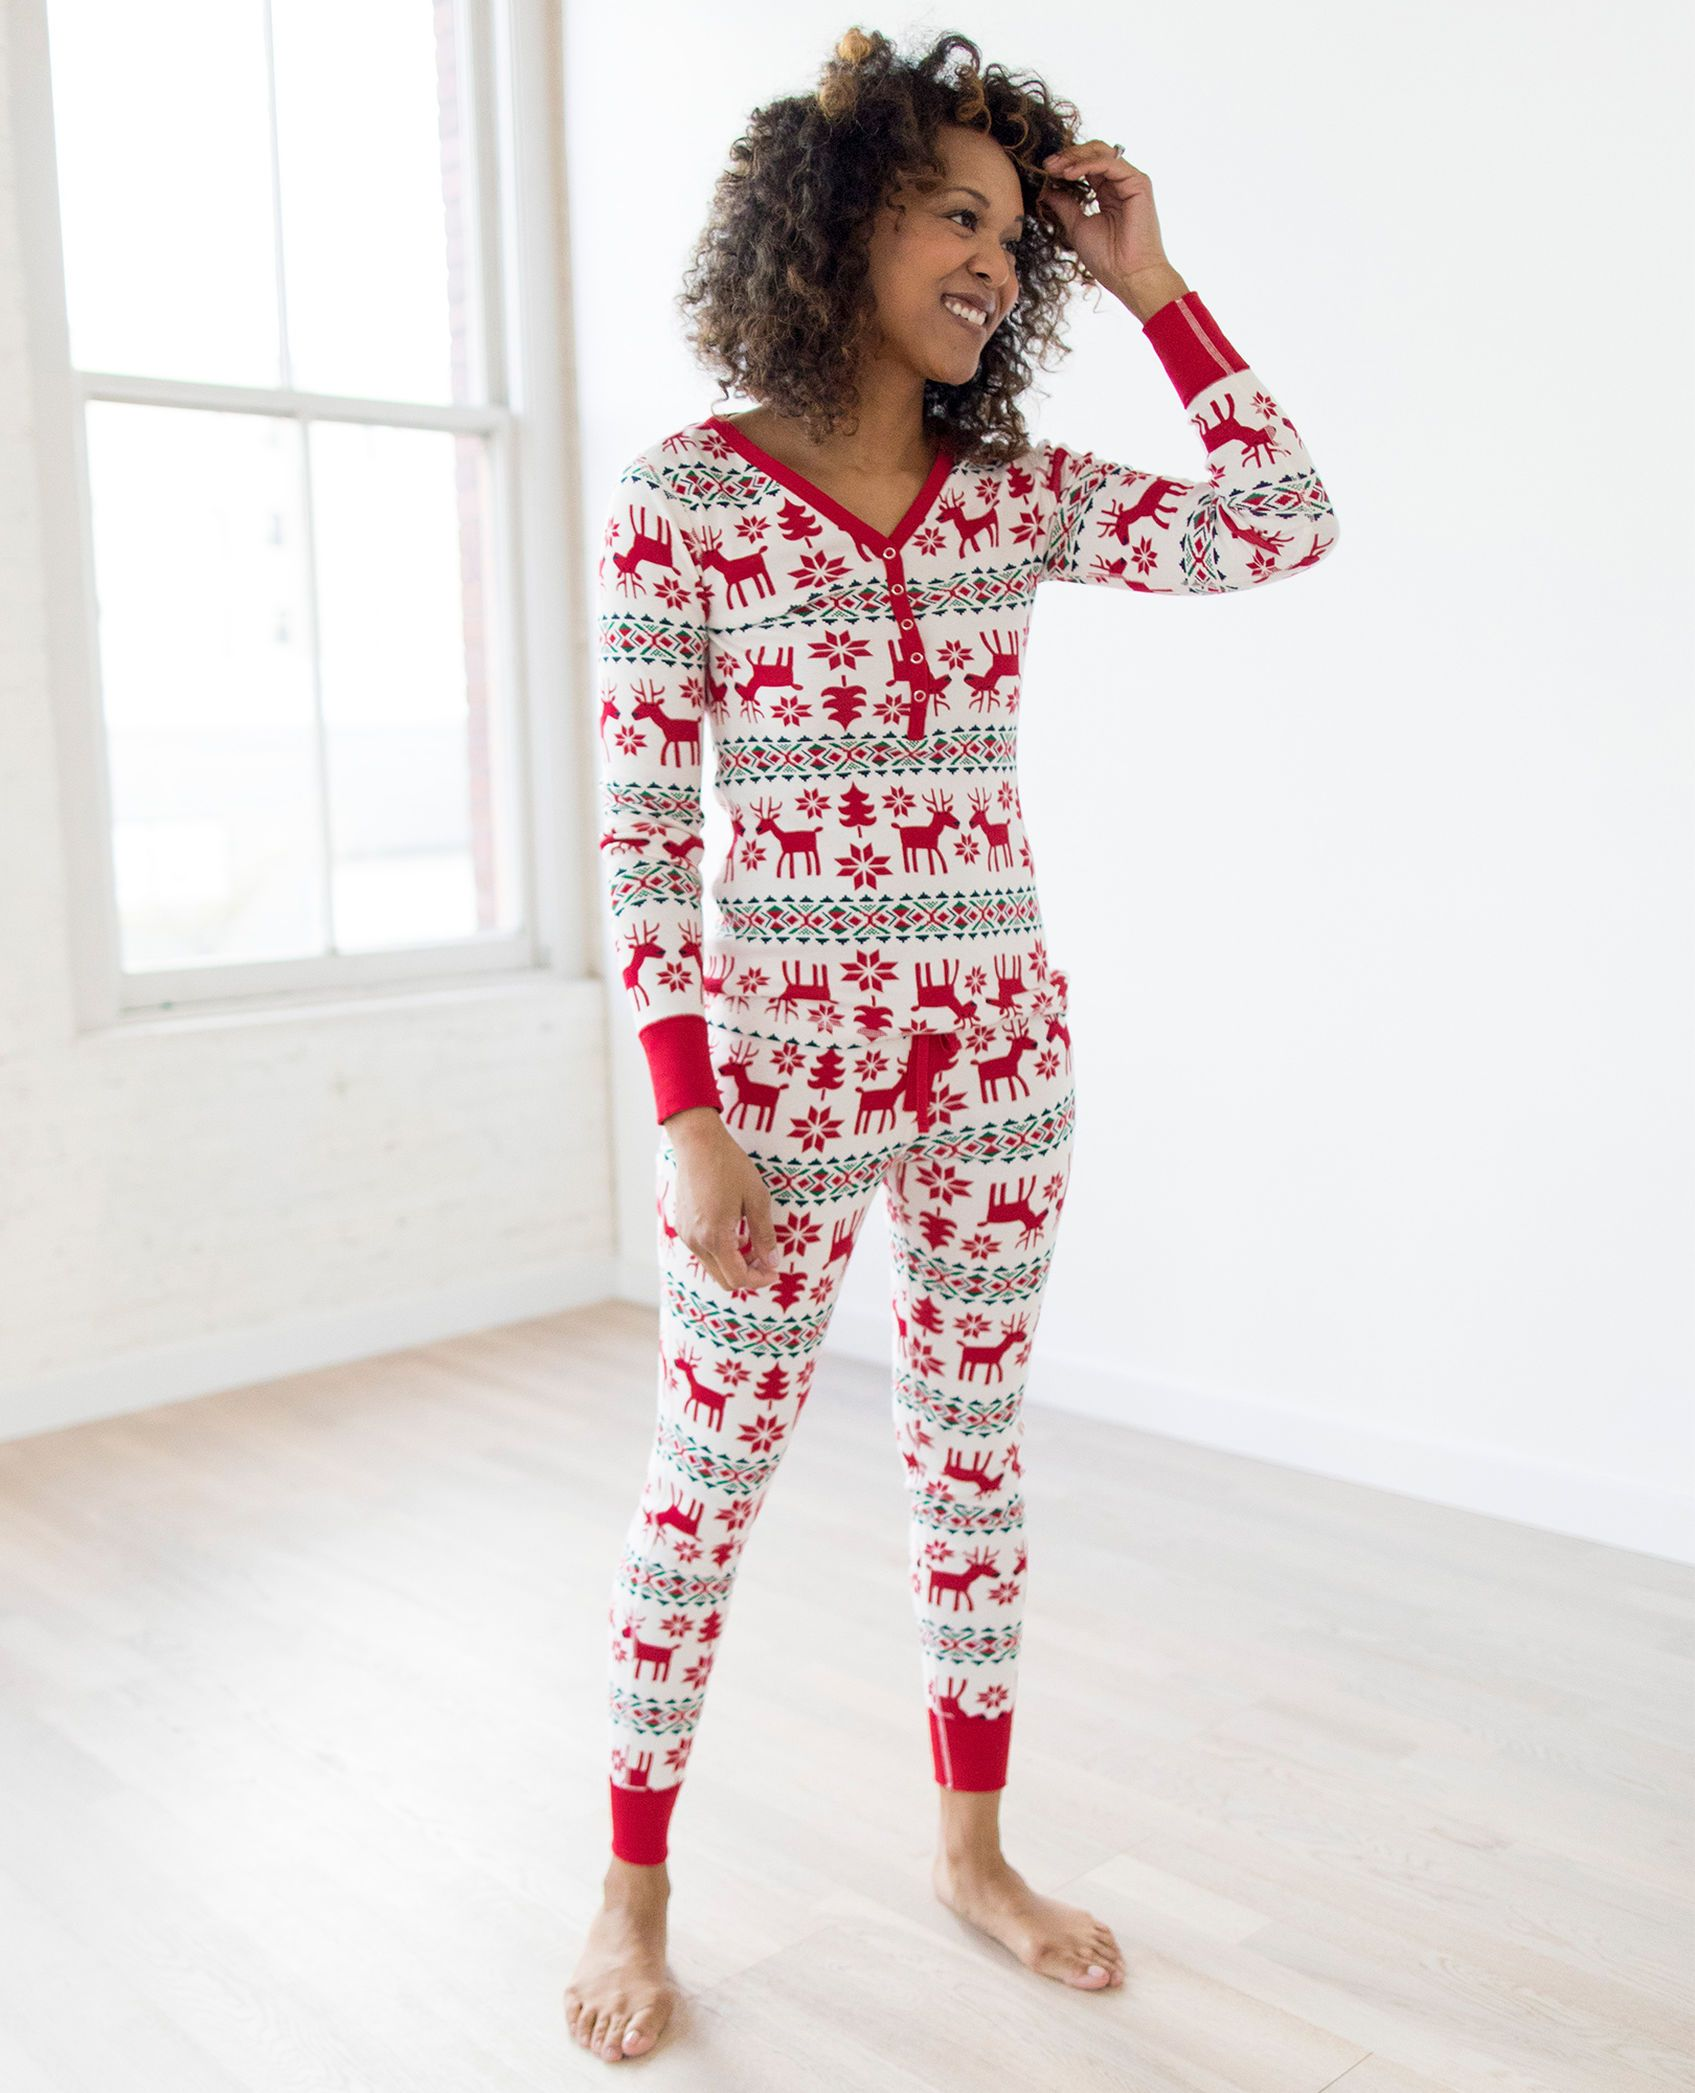 cfa3e8c8e1 Organic Cotton women s henley pajama top in dear deer print from Hanna  Andersson